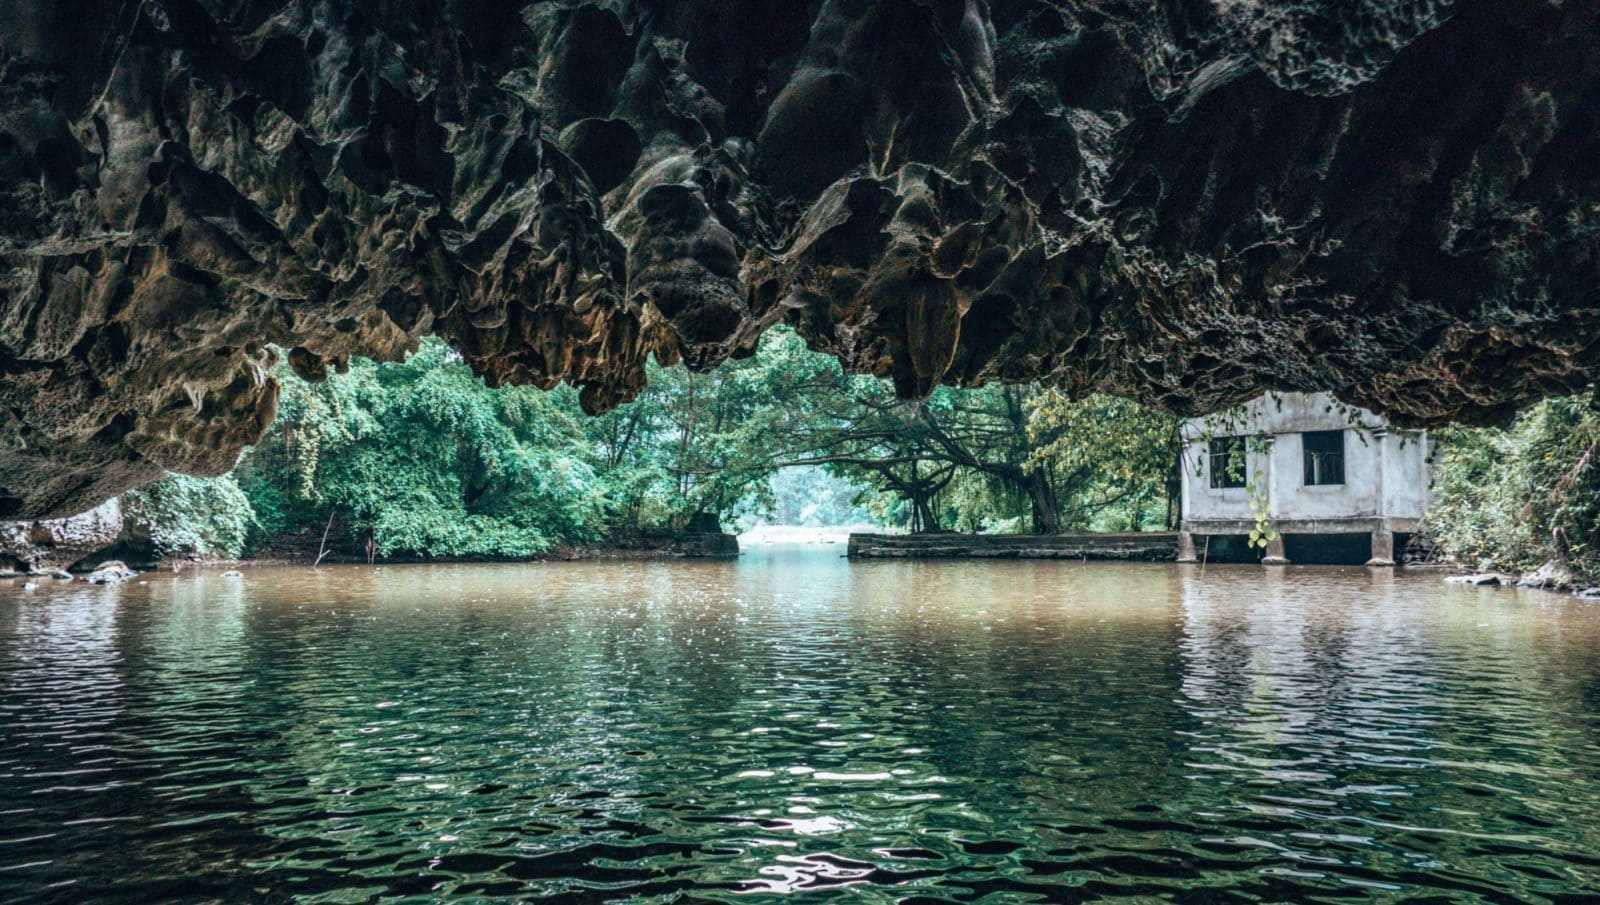 Picture of emerging from a cave on the Tam Coc river in Vietnam